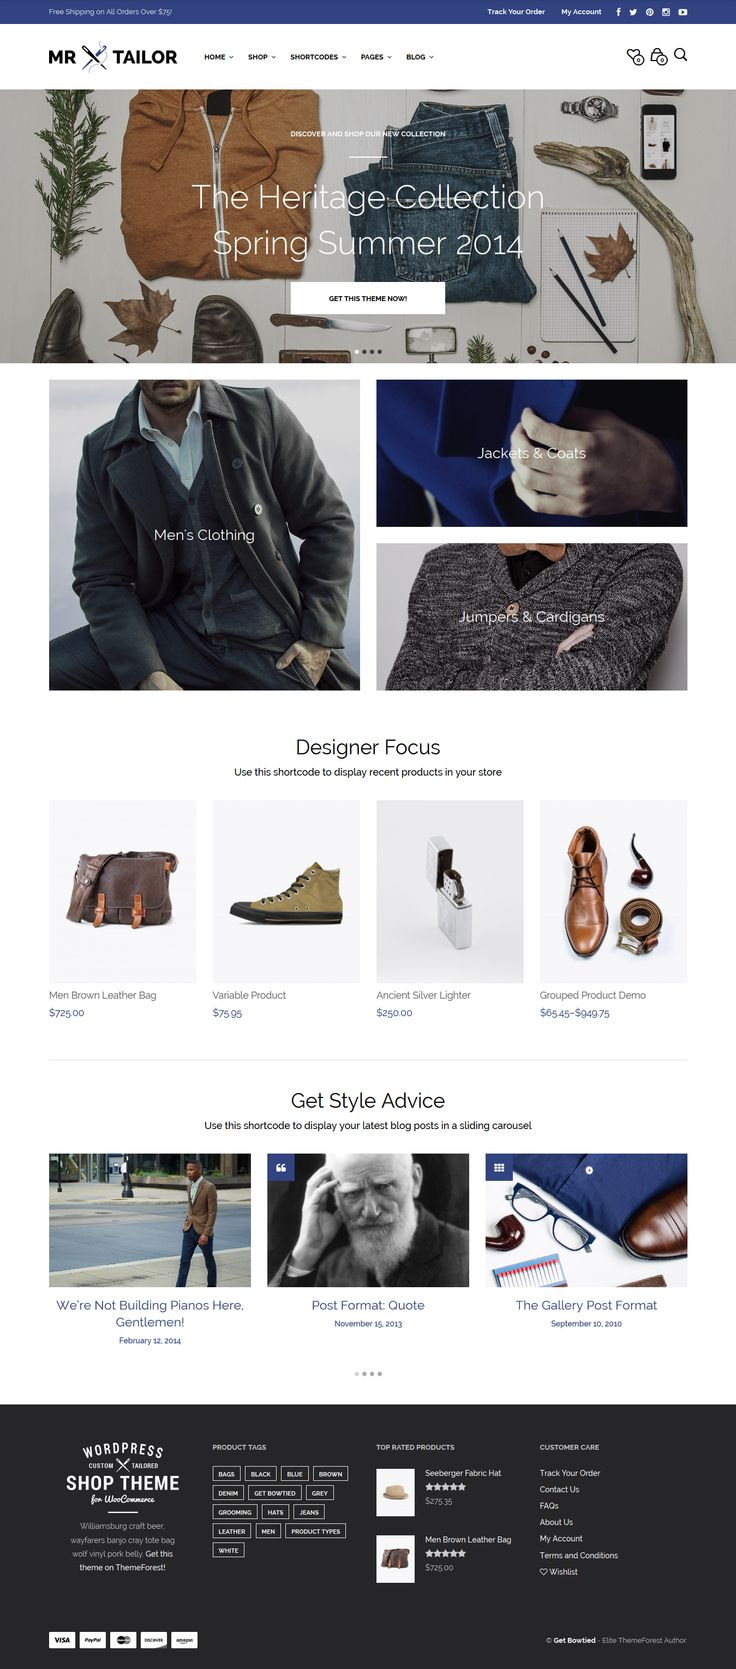 Mr. Tailor - Retina Responsive WooCommerce Theme #wordpress #web #shop